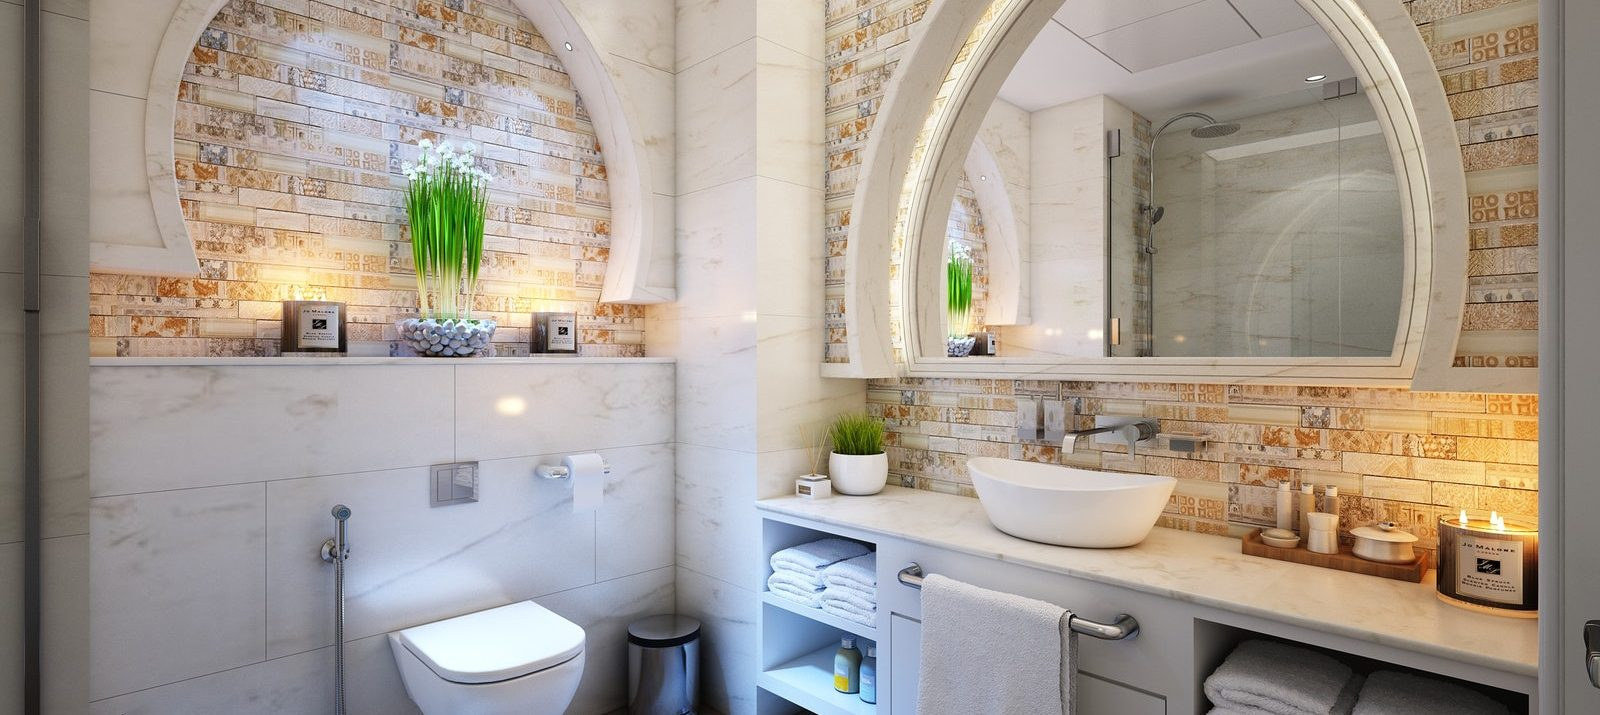 18 Alluring Ways To Organize A Bathroom Without Drawers And Cabinets_MakeSpace.jpeg